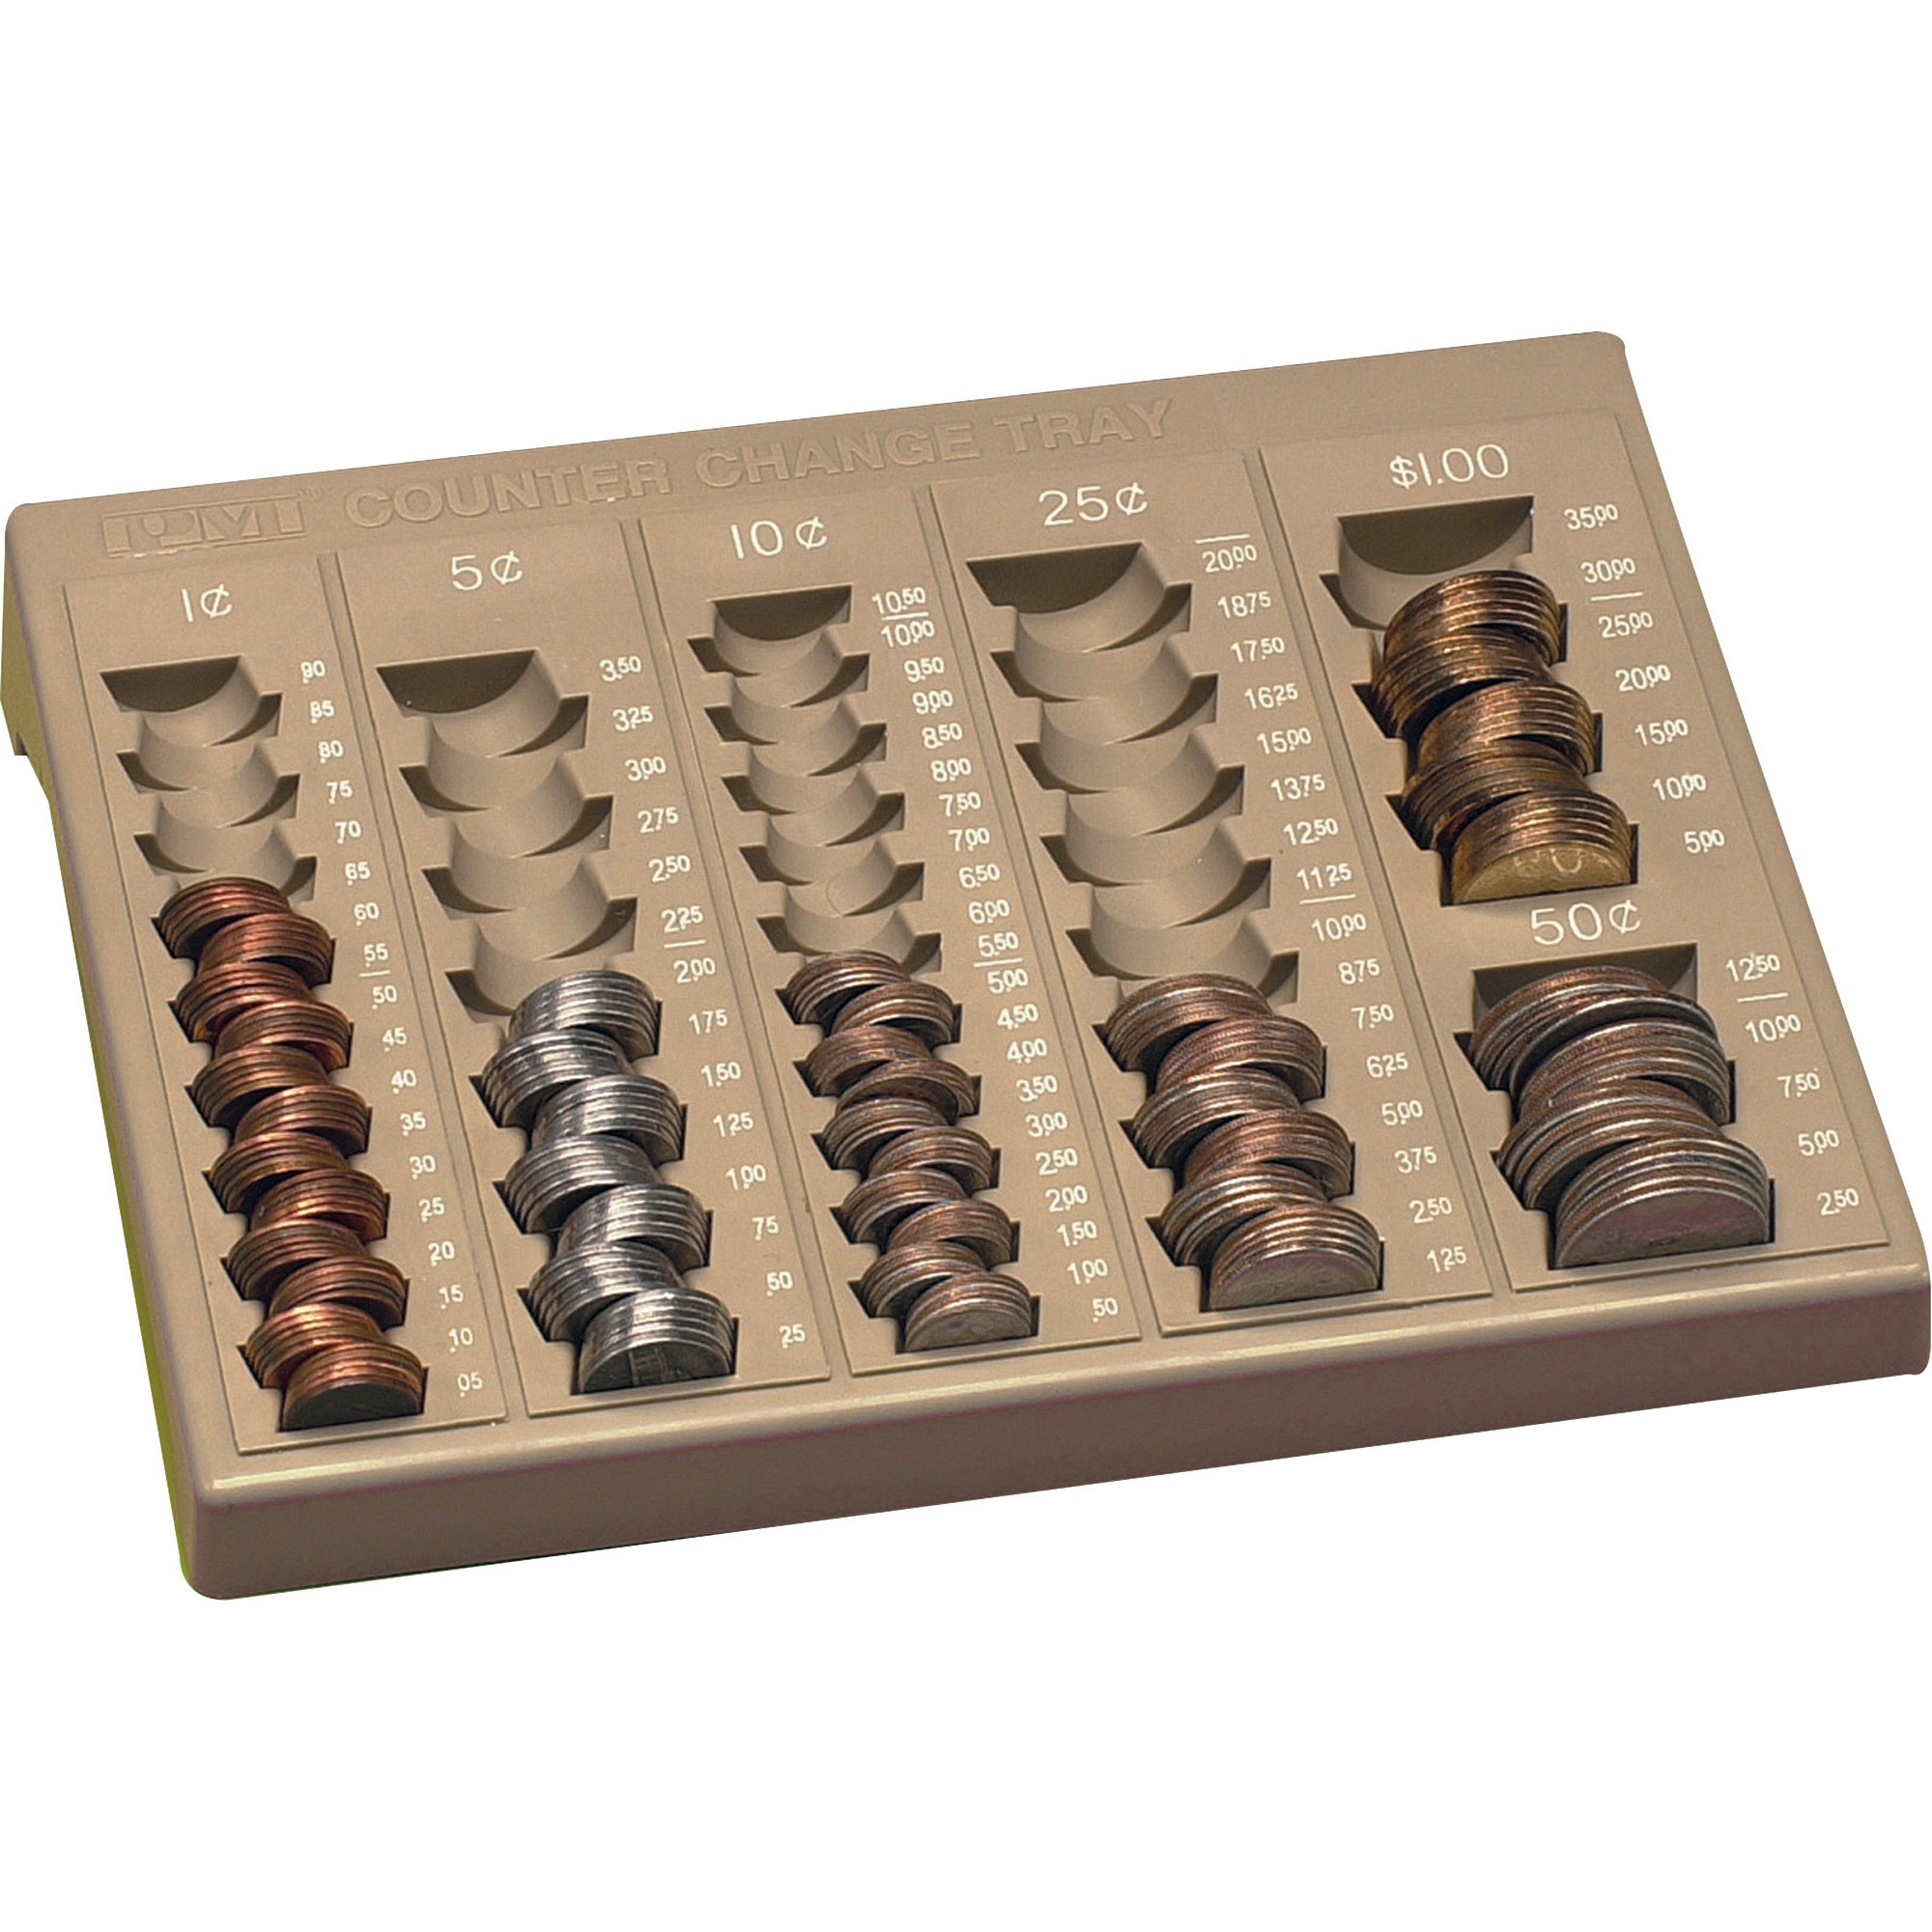 PM, PMC05025, SecurIT Counter Change Tray, 1, Beige